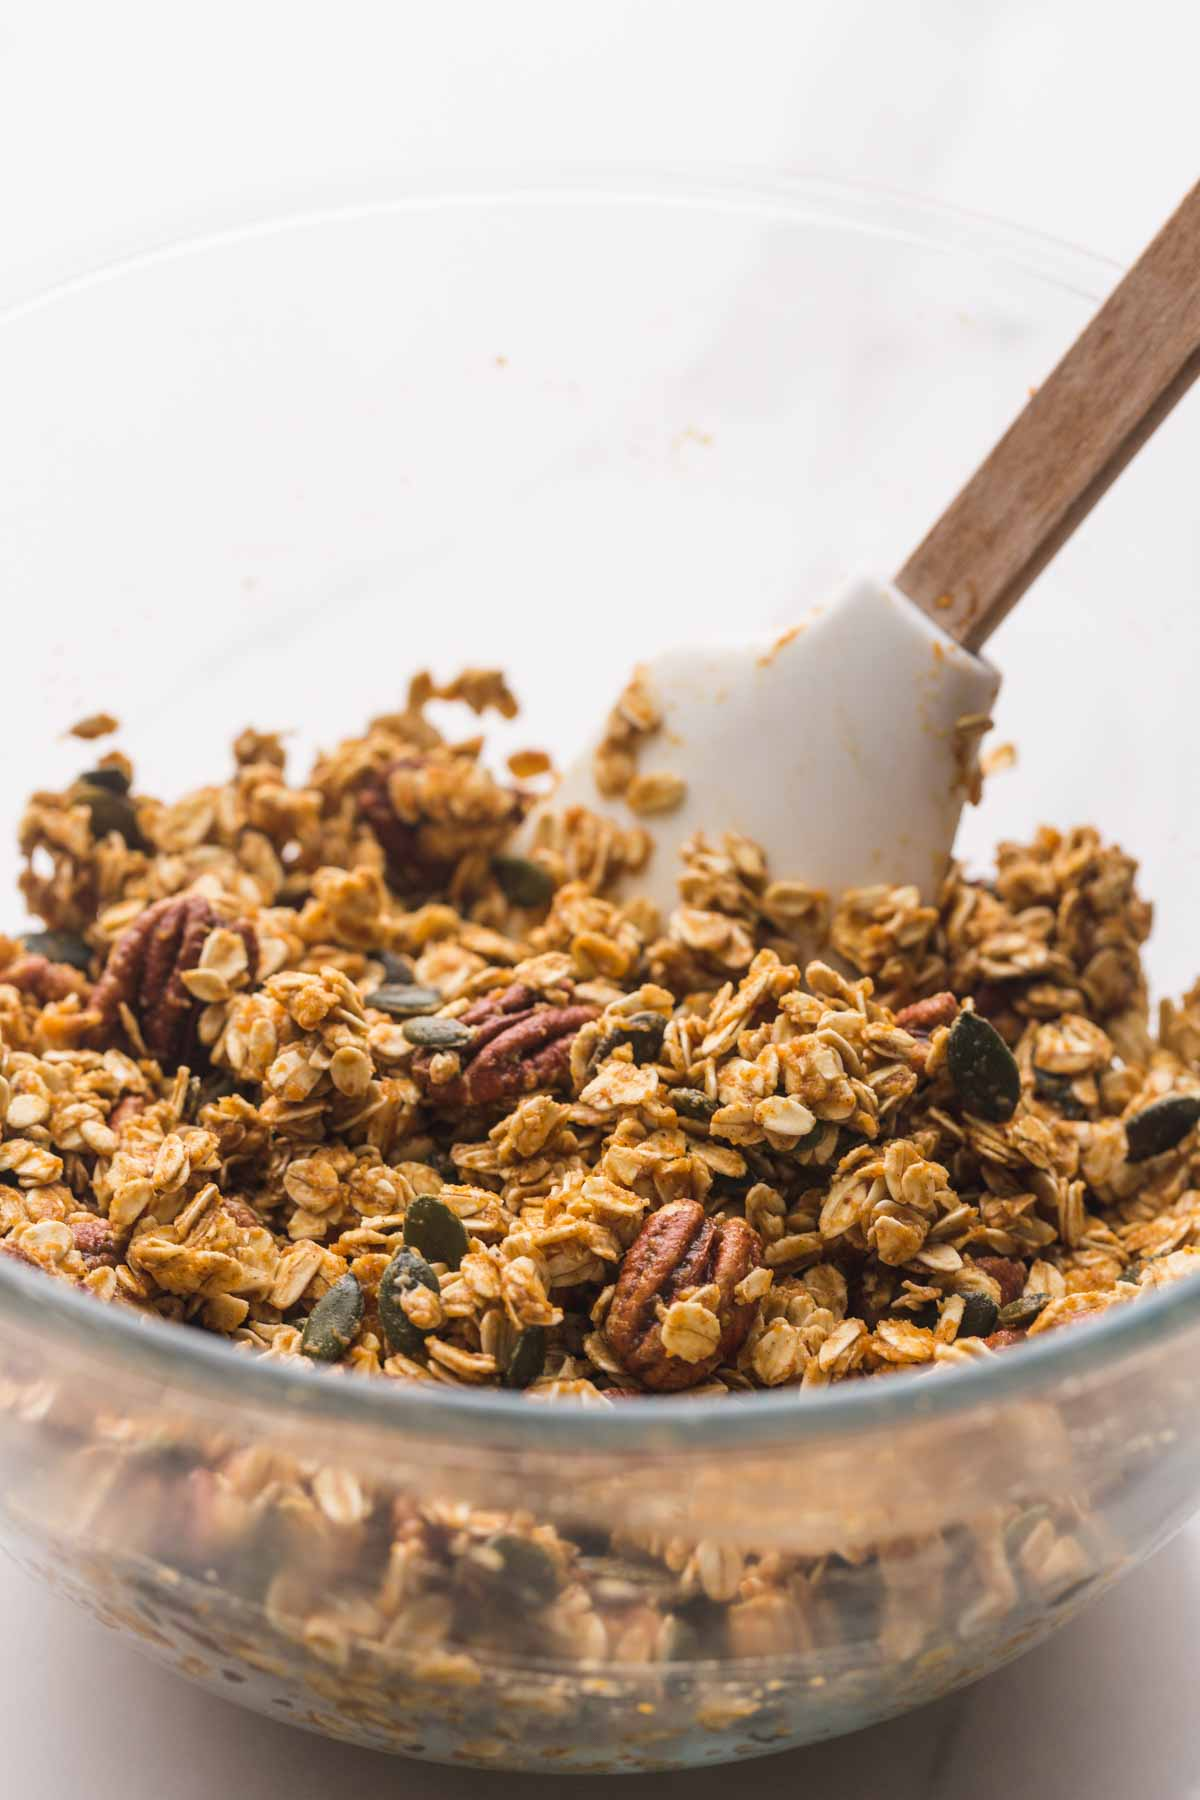 Mixing the granola ingredients with a spatula in a large glass bowl